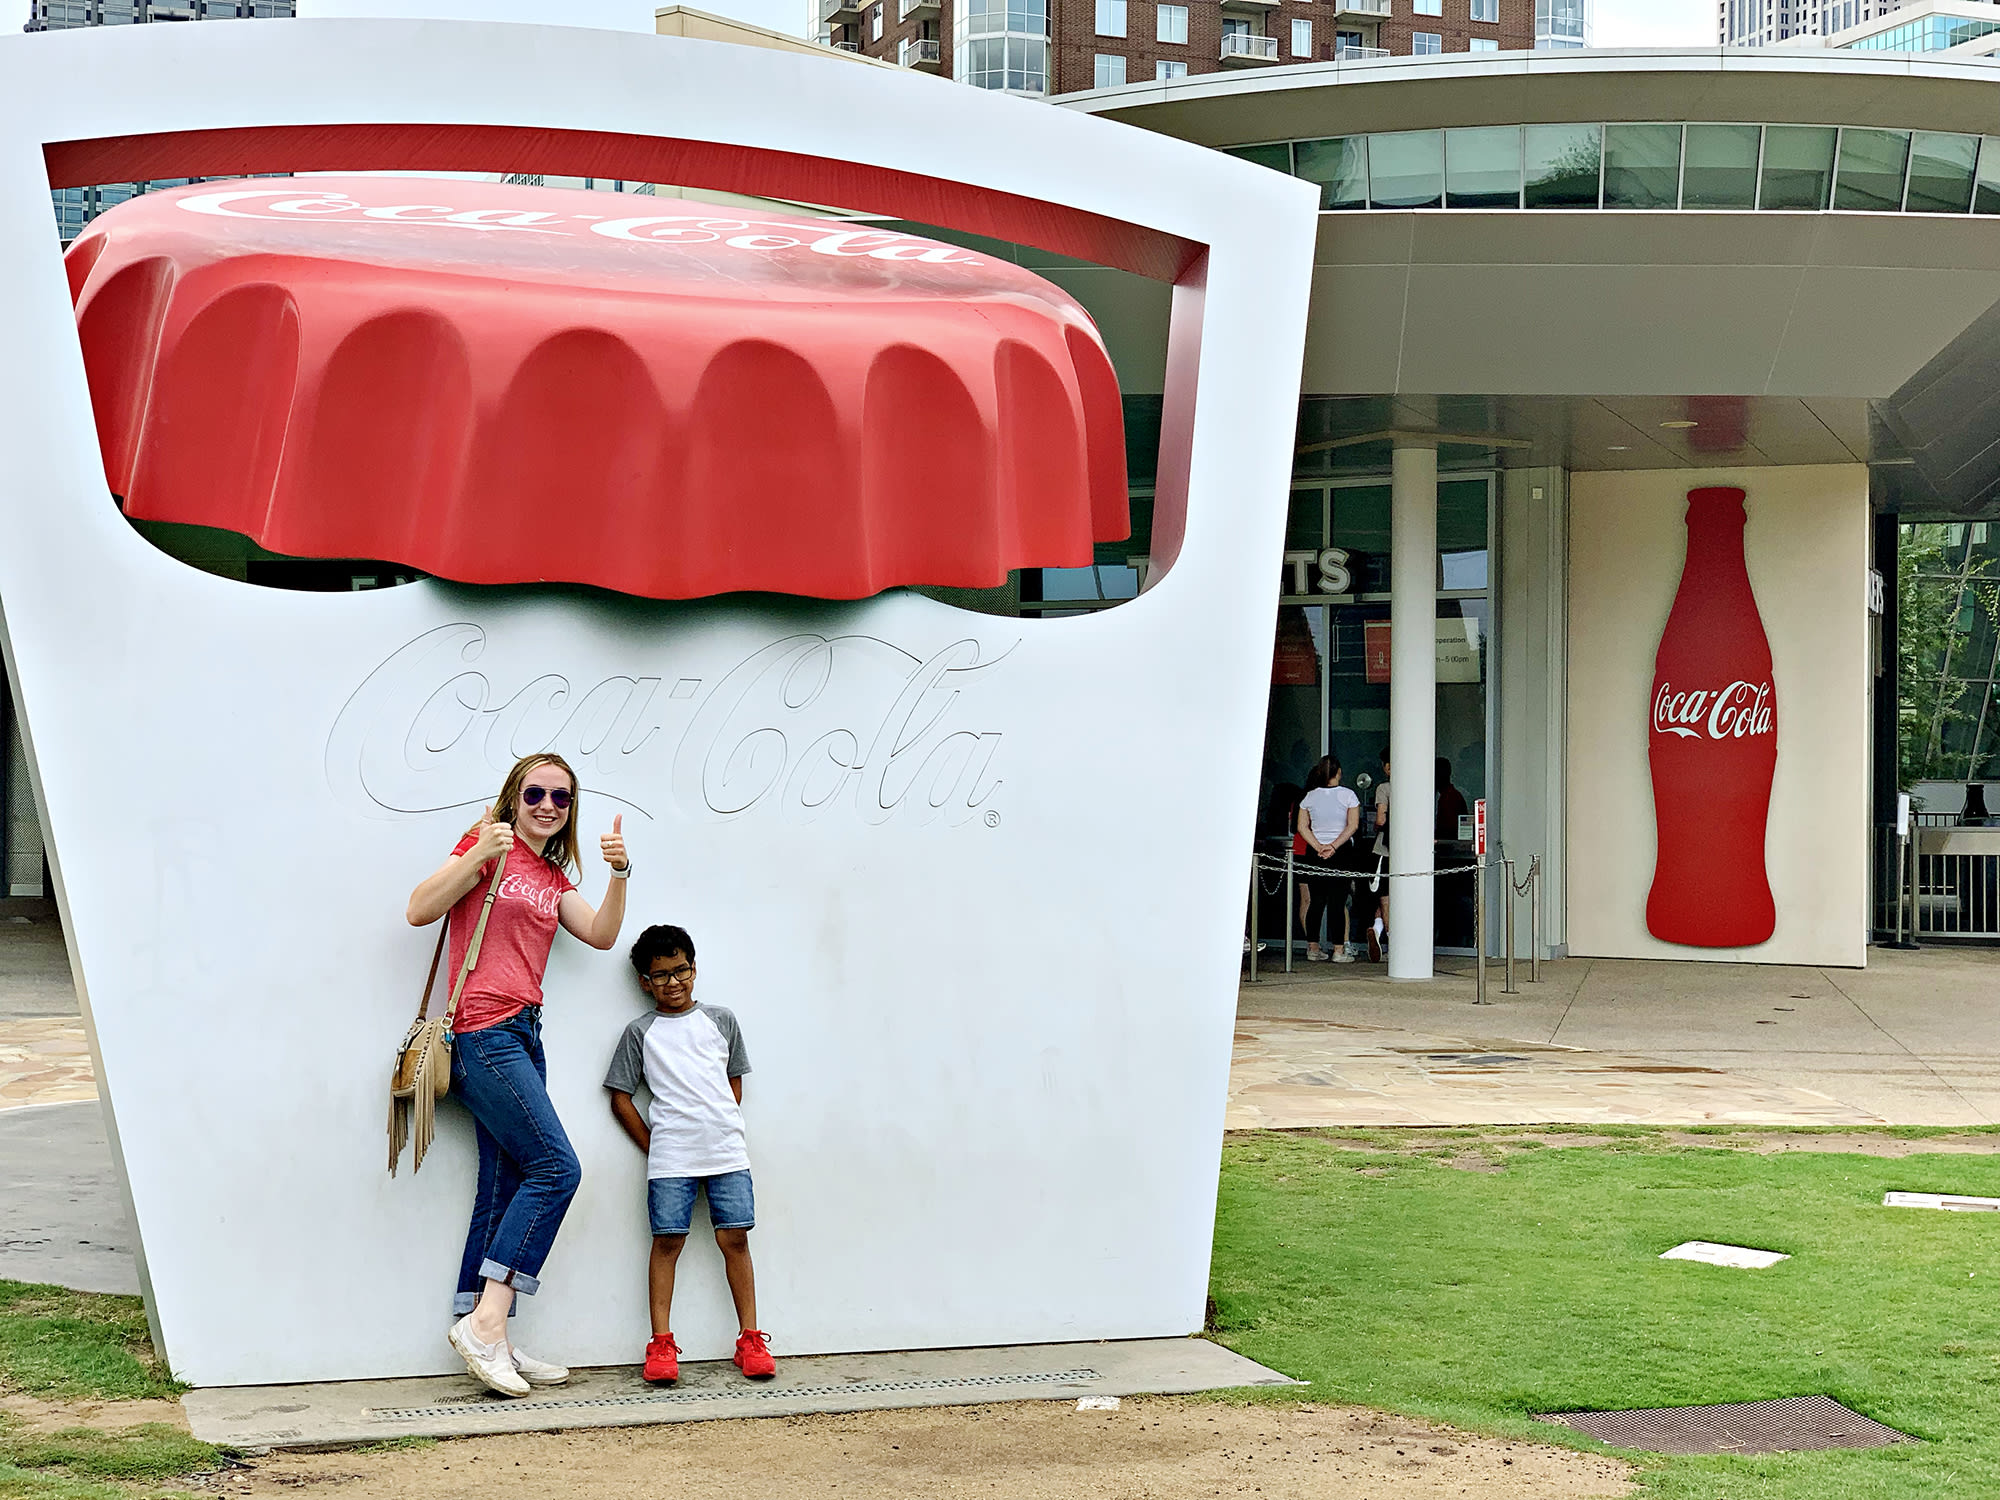 Family friends posing in front of the giant Coca-Cola cap sign before going into World of Coca-Cola.